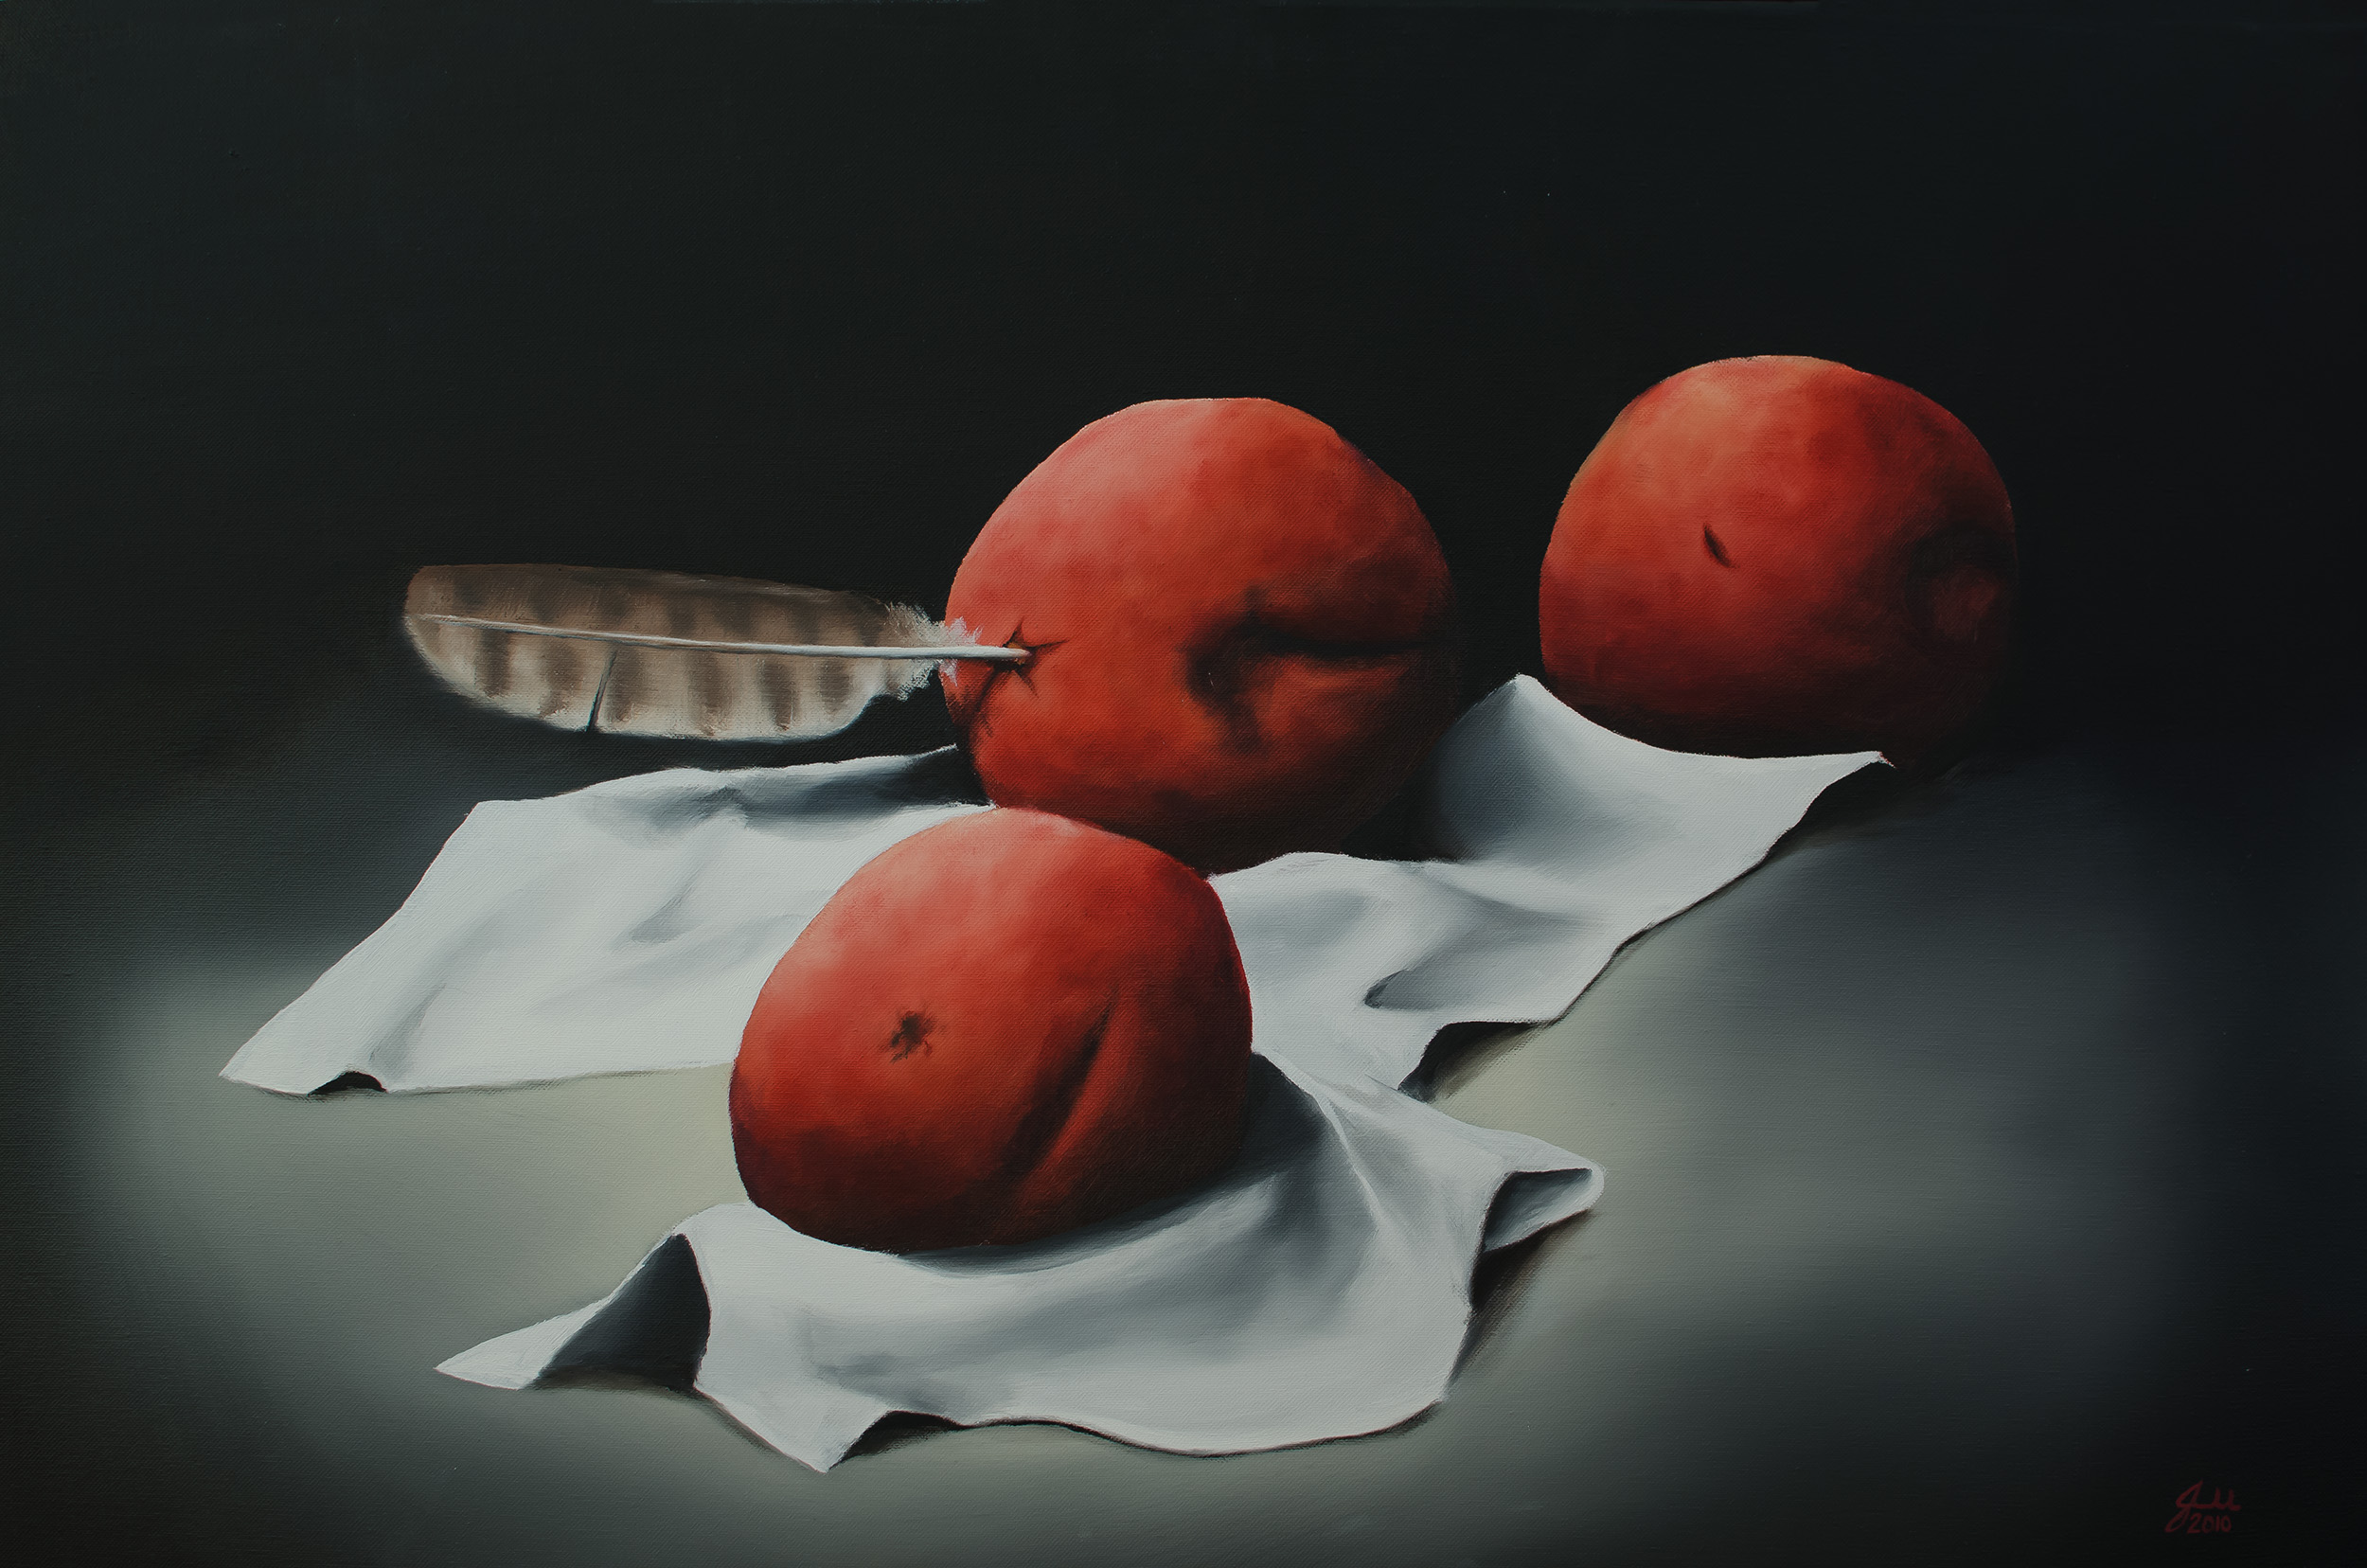 """NIKE   Oil on canvas, 24x36"""", 2010"""